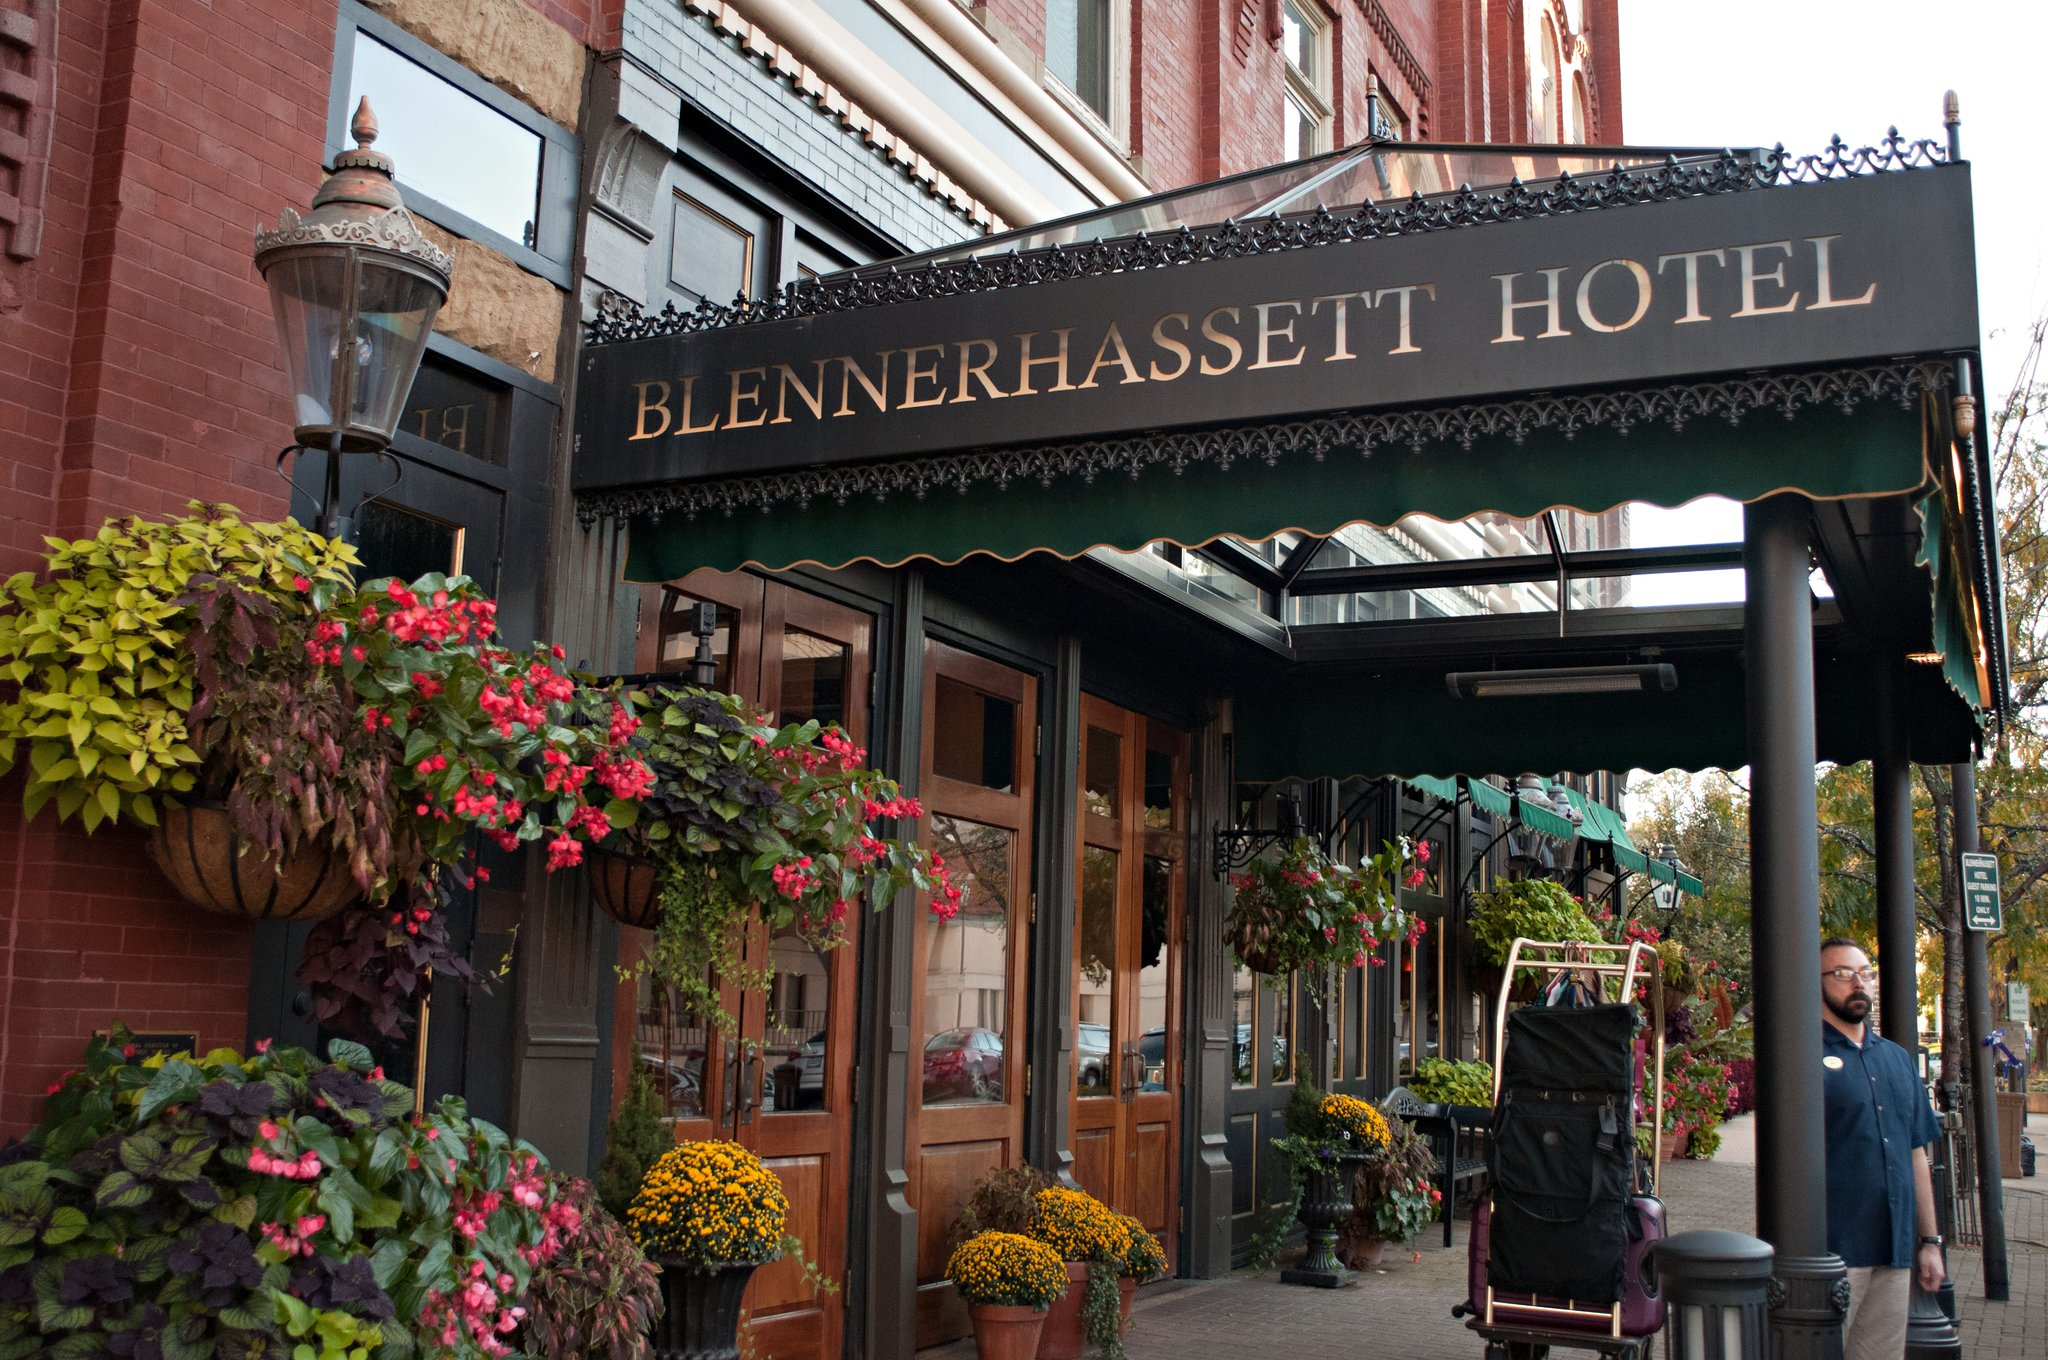 Blennerhassett Hotel Meetings And Events First Class